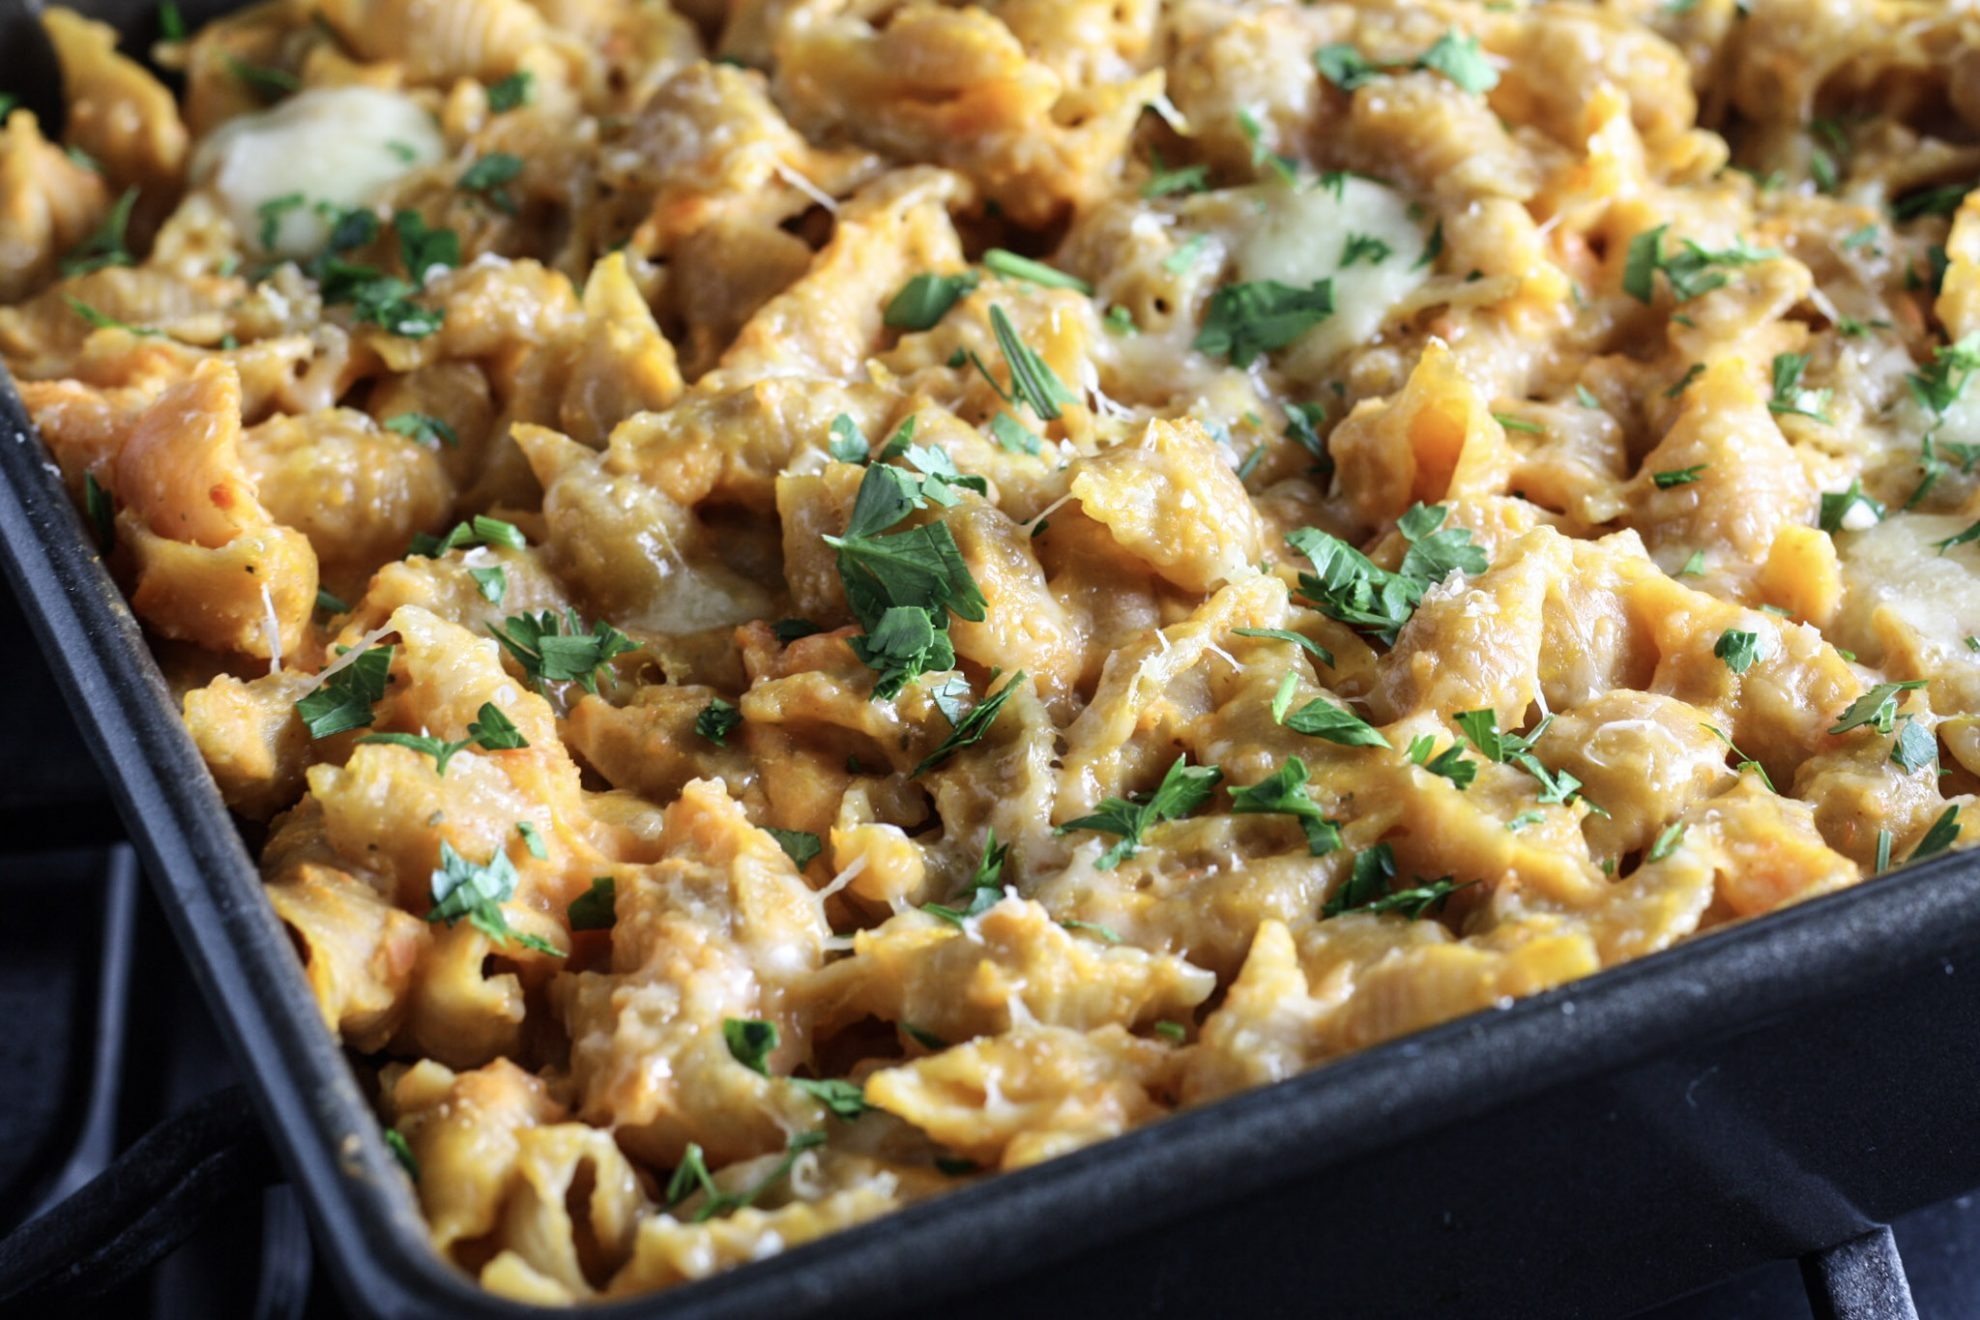 Healthy Butternut Squash Mac and Cheese recipe from Mince Republic